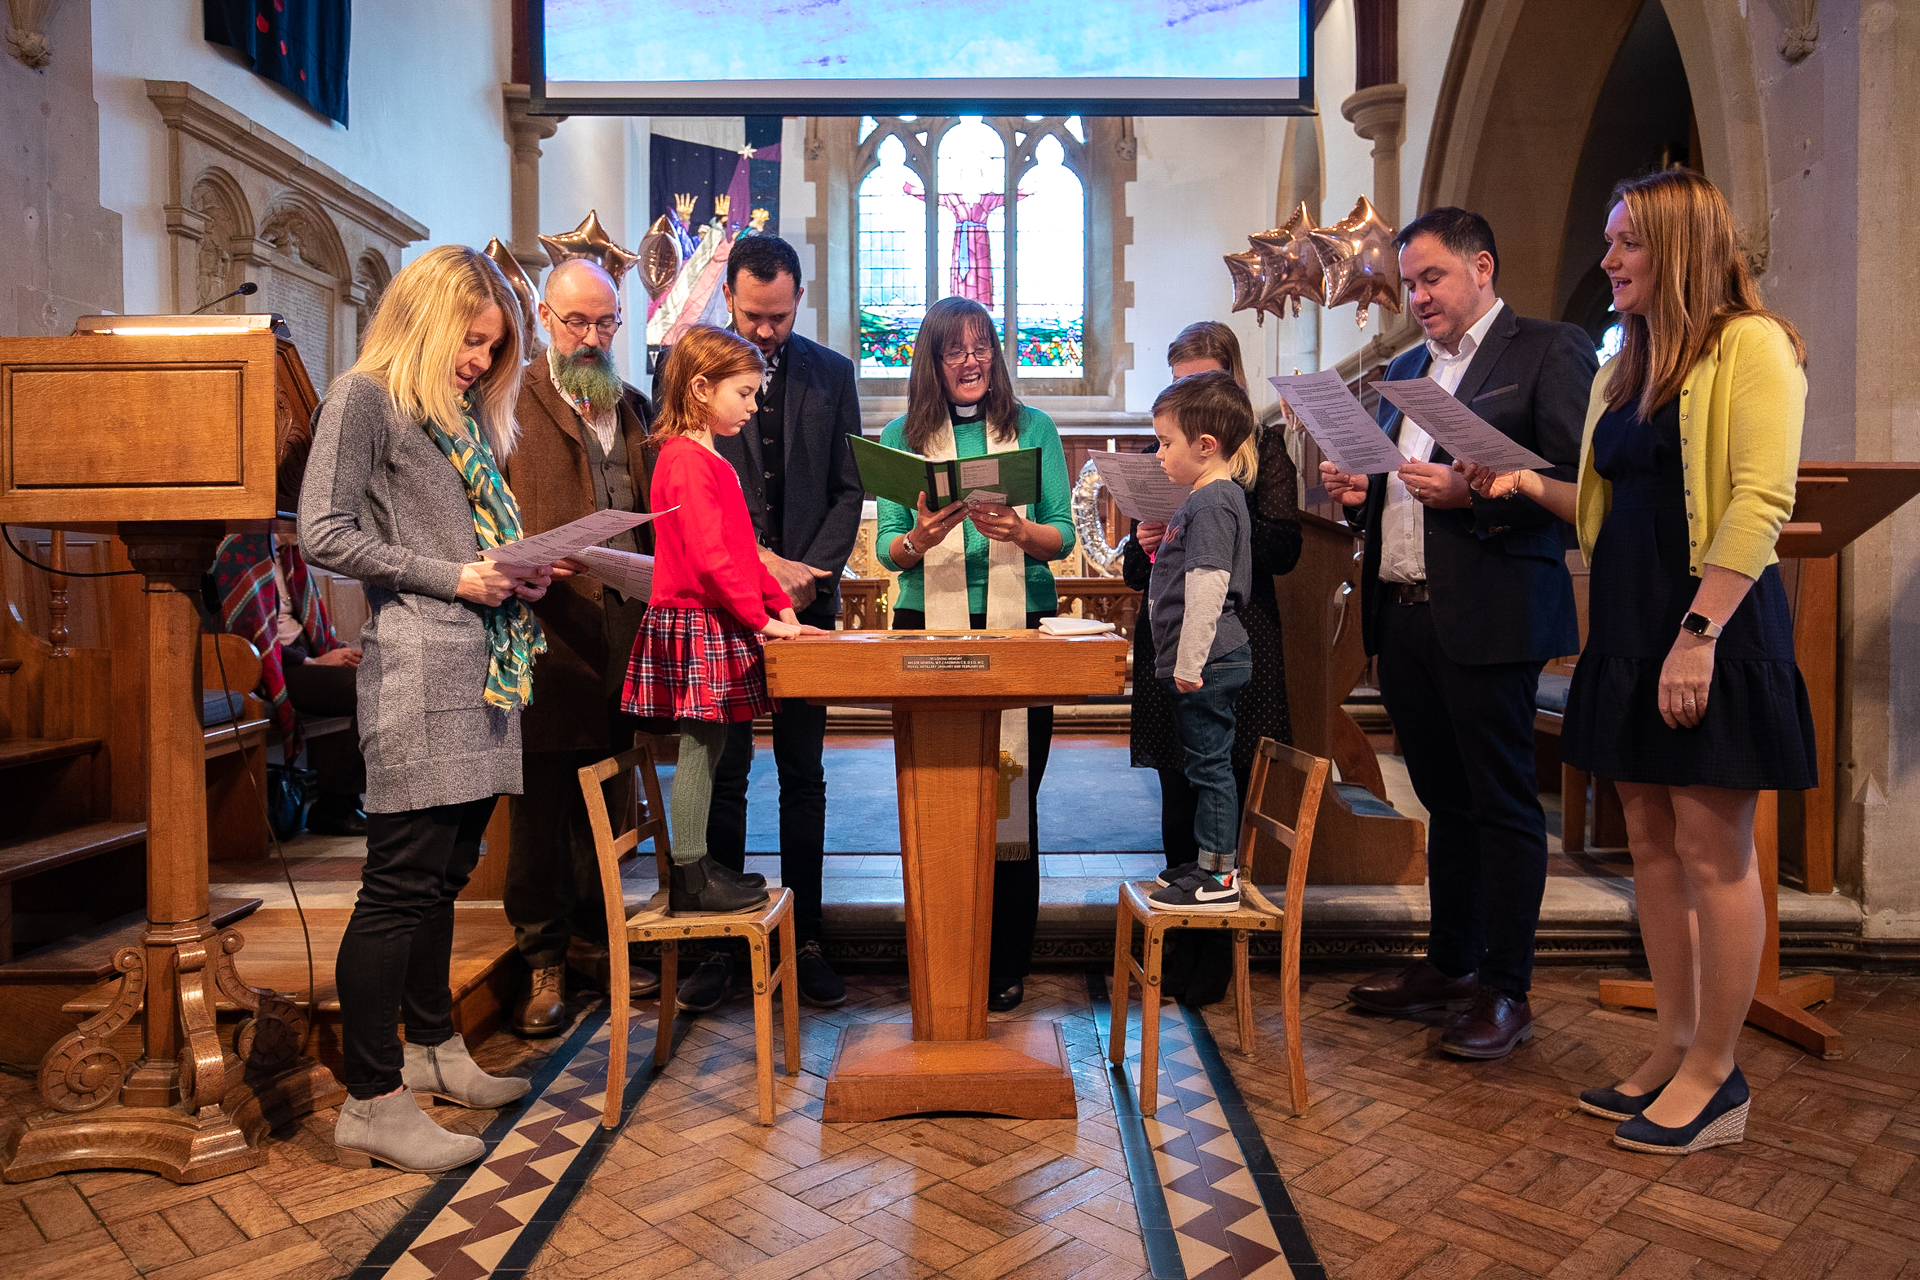 Adam Dickens 2019 - St Johns Churt - Infant Baptism 127.jpg